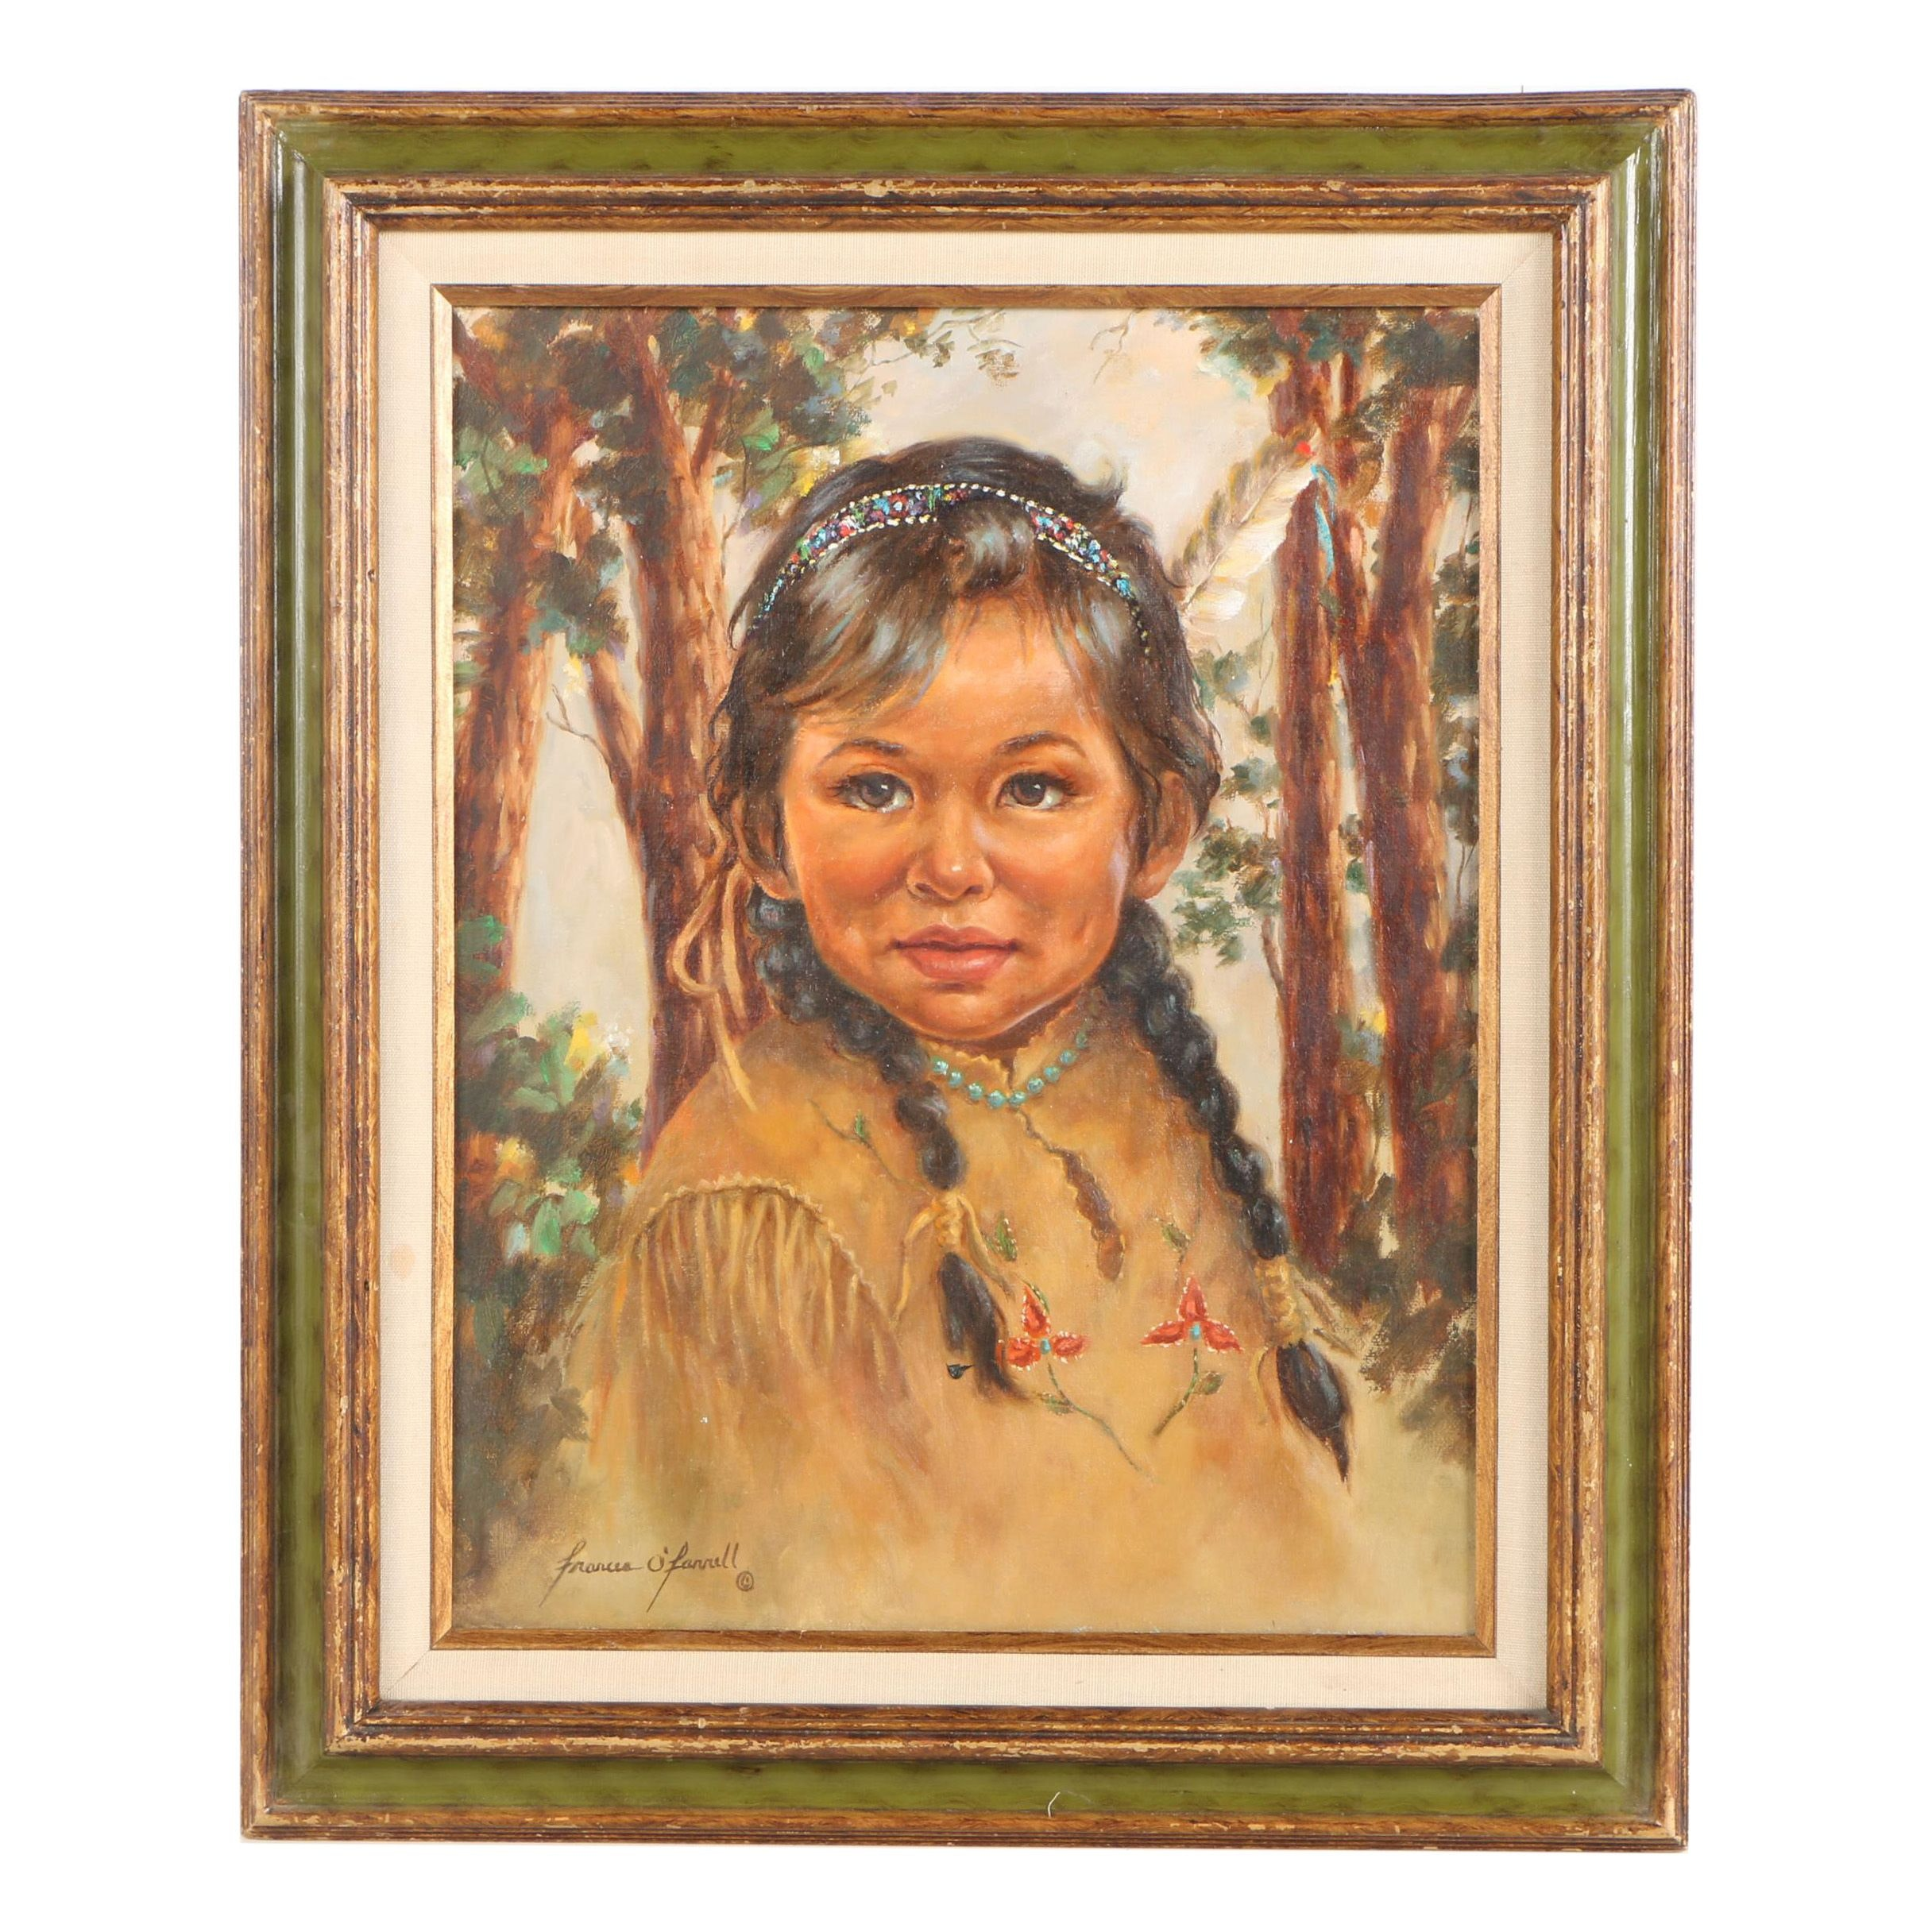 Frances O'Farrell Oil Painting of Child